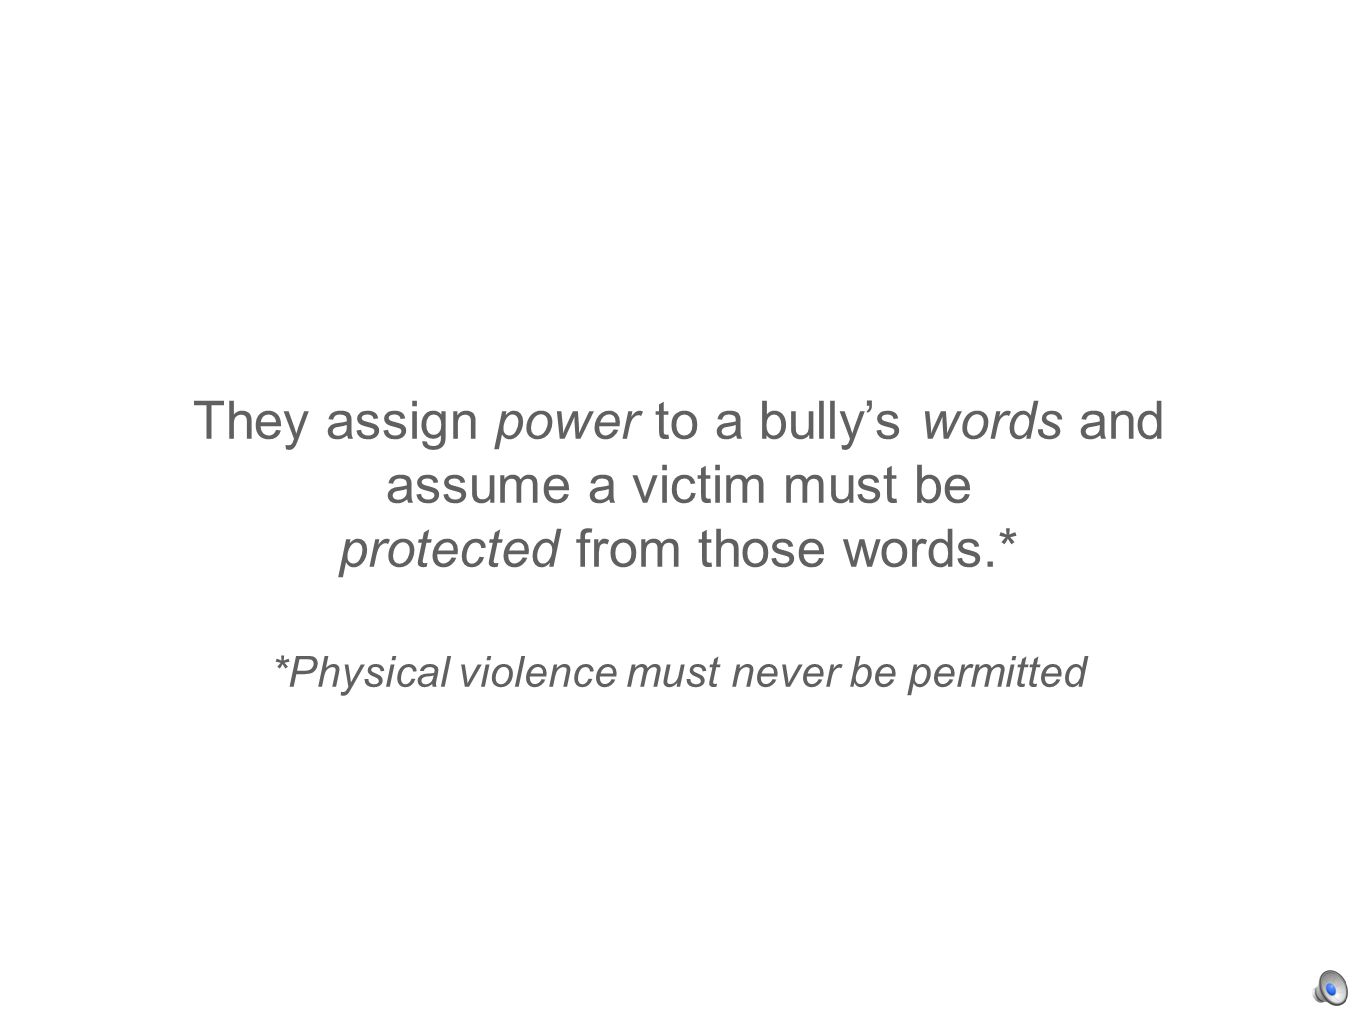 They assign power to a bullys words and assume a victim must be protected from those words.* *Physical violence must never be permitted